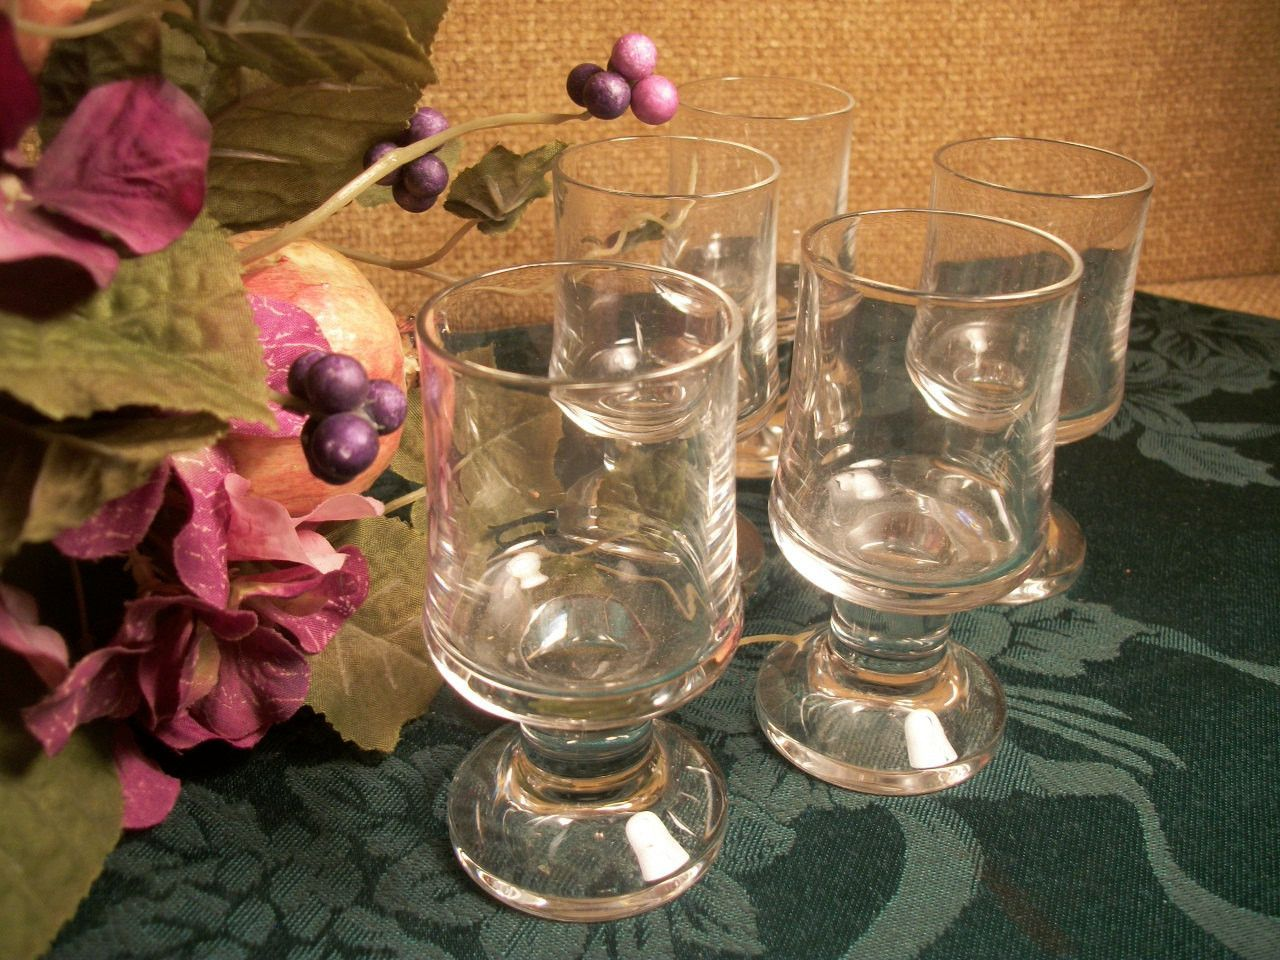 Cordial Glasses Vintage 1970's Bar Ware Art Deco Pedestal Liquoir Aperitif Entertaining Glassware